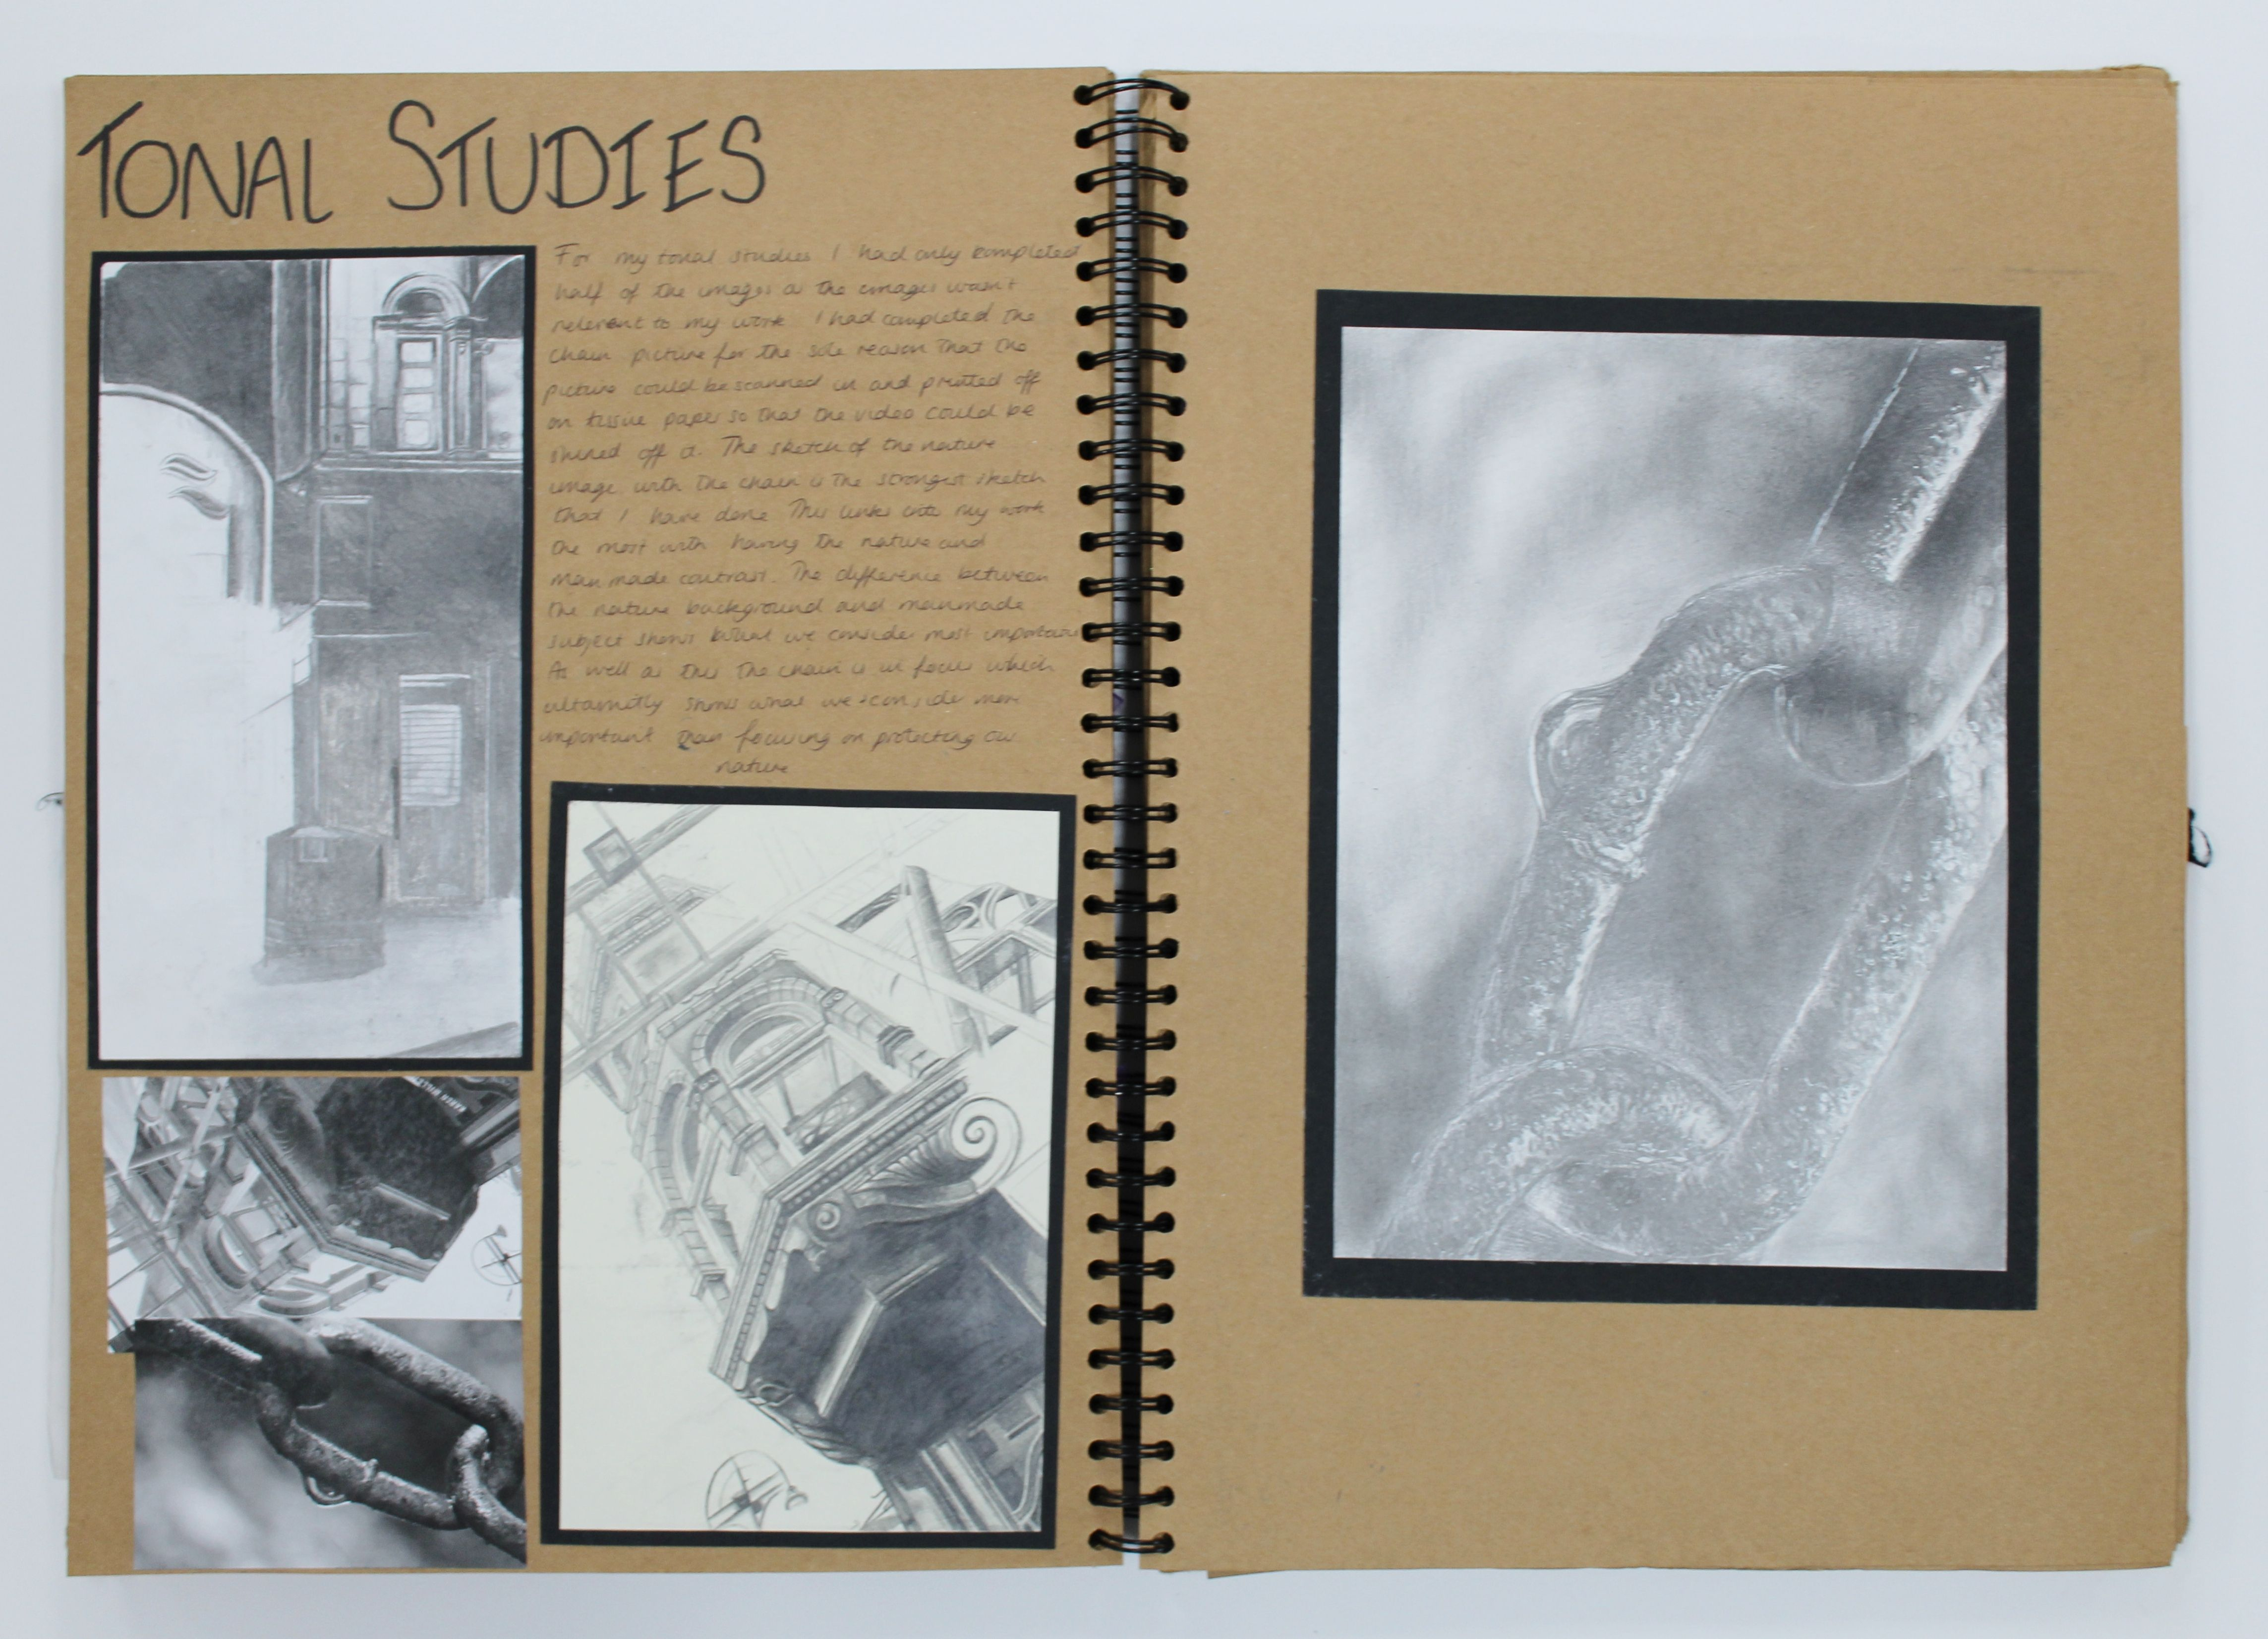 A2 Fine Art A3 Brown Sketchbook Tonal Studies Esa Truth Fantasy Or Fiction Thomas Rotherham College 2016 Sketch Book Art Artist Research Page